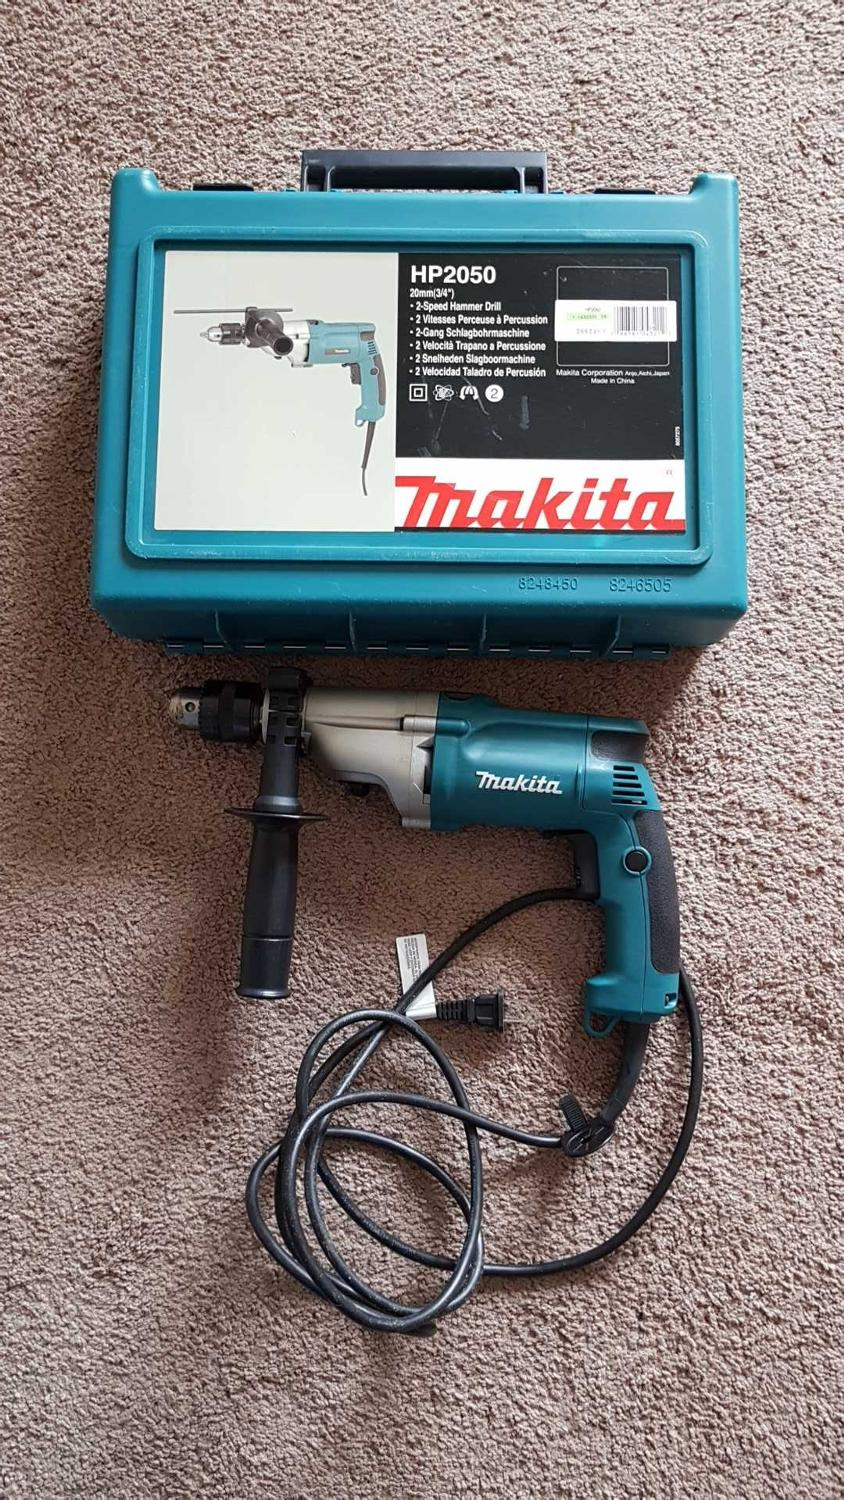 Find More Makita 2 Speed Hammer Drill For Sale At Up To 90 Off